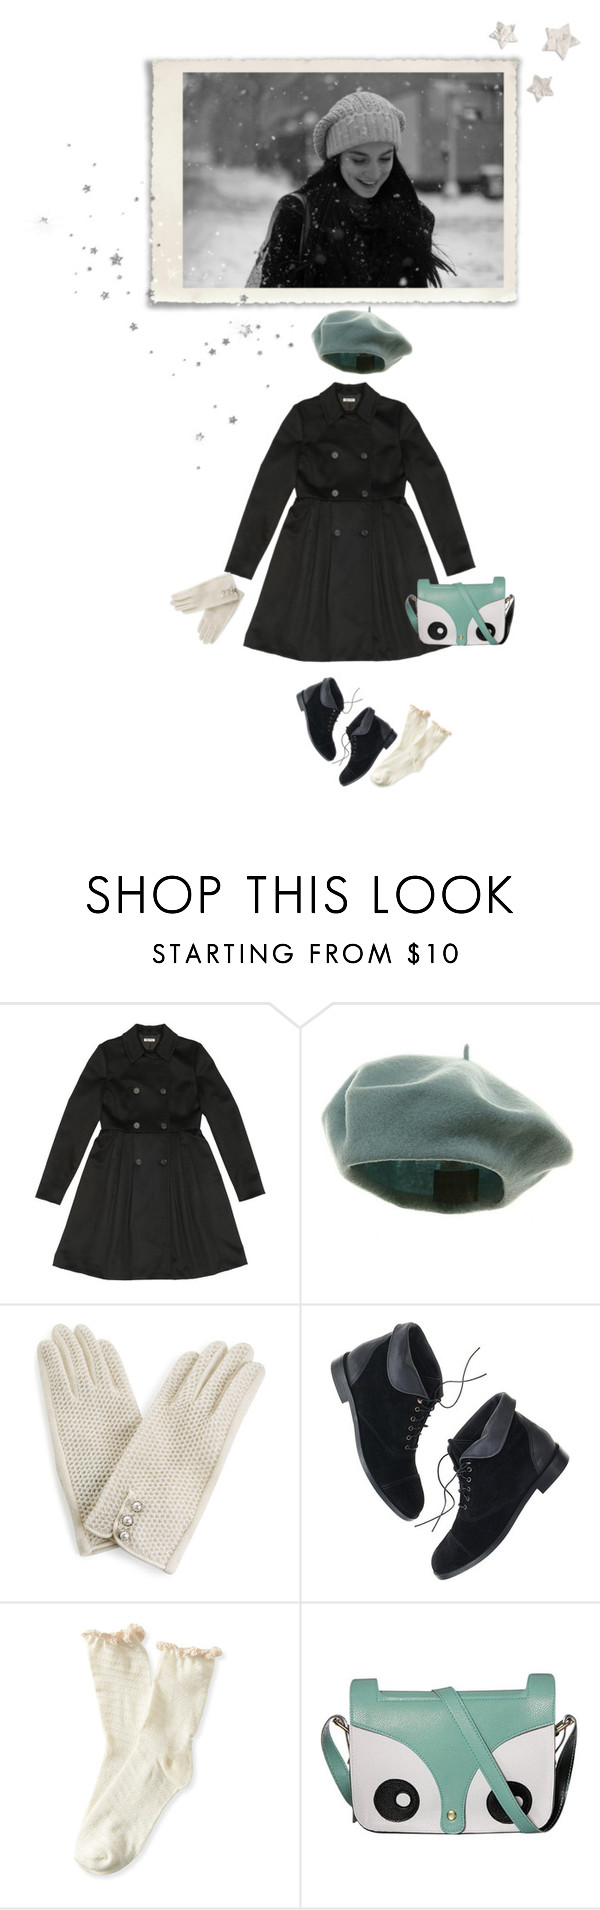 """Snow day"" by marialay ❤ liked on Polyvore featuring Miu Miu, Monsoon, Madewell and Aéropostale"